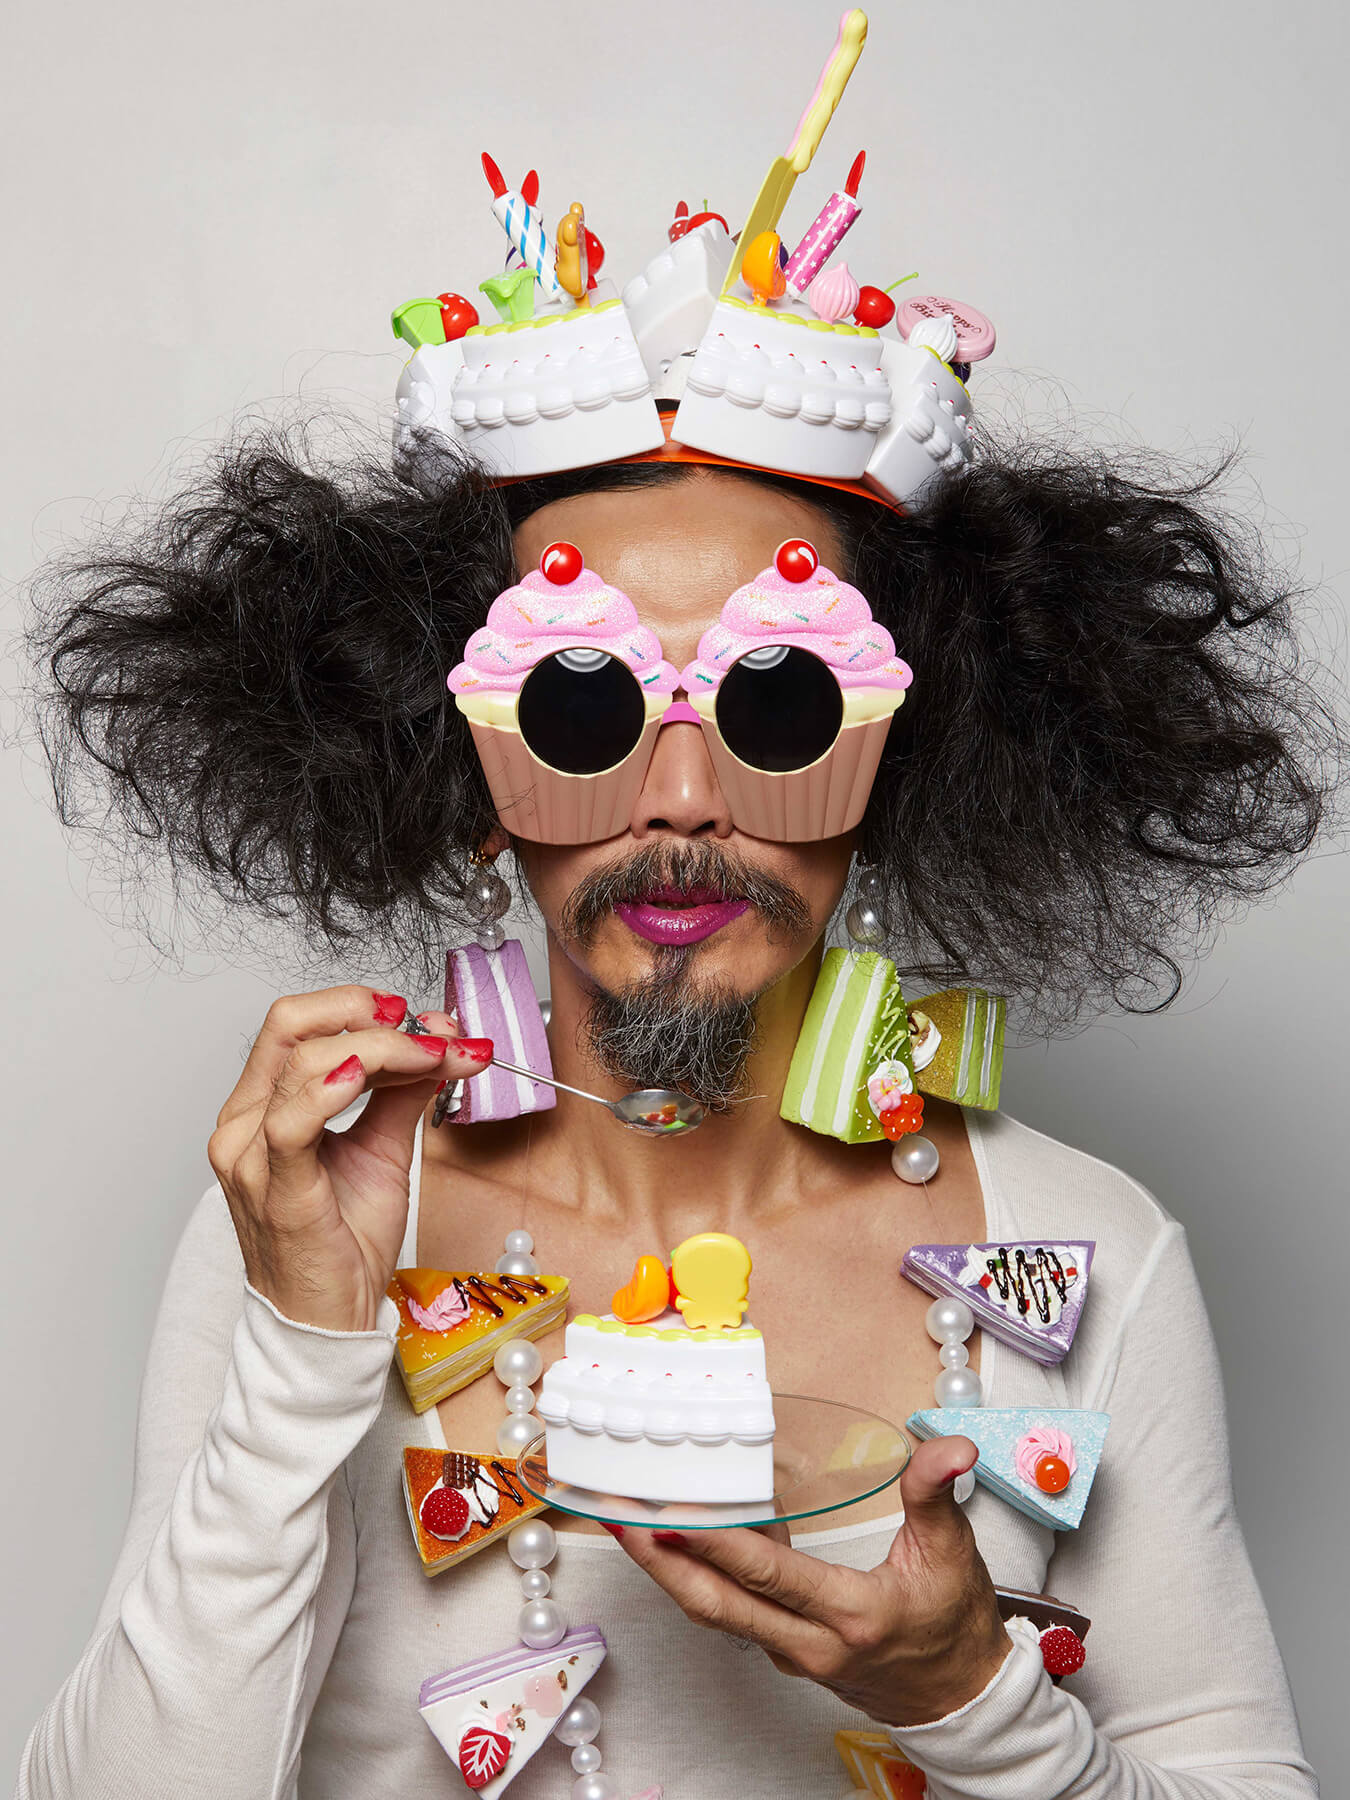 4 Oct 2017 - Doris Day: 5 Oct 2017 - World Teacher's Day: Derong is photographed with cakes for accessories